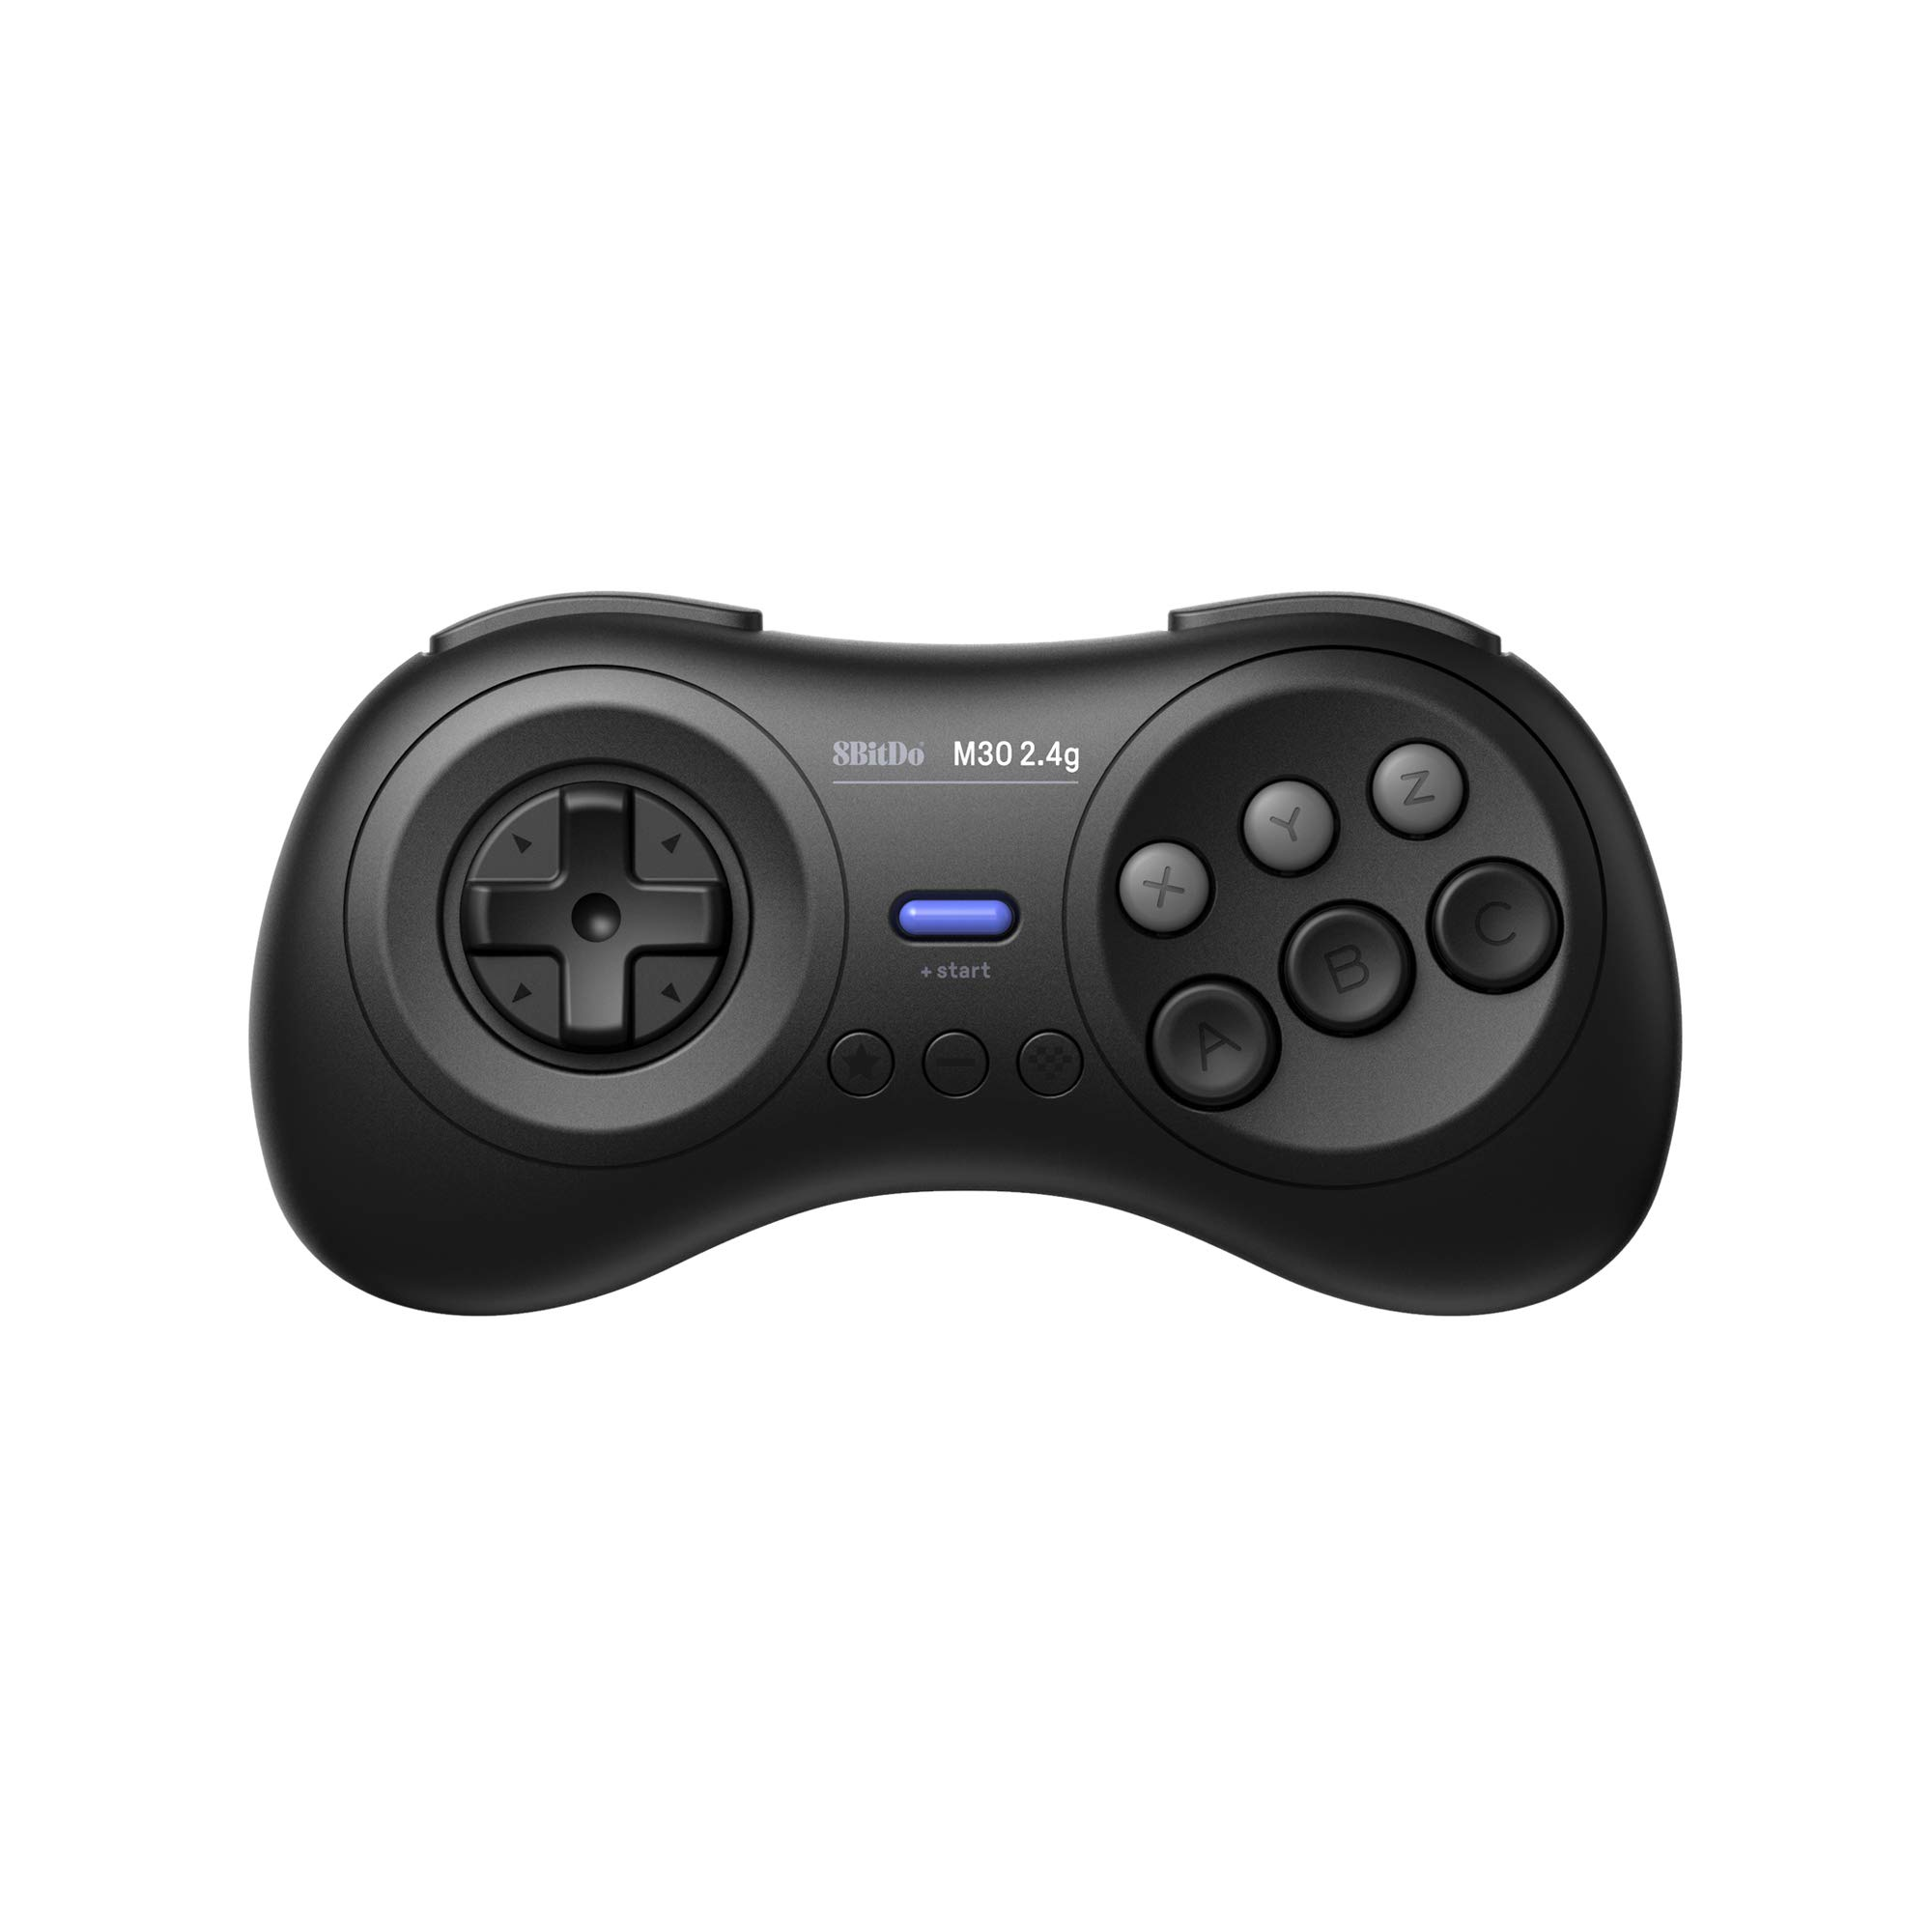 8Bitdo M30 2.4G Wireless Gamepad for the Original Sega Genesis and Sega Mega Drive - Sega Genesis,Black by 8Bitdo (Image #7)